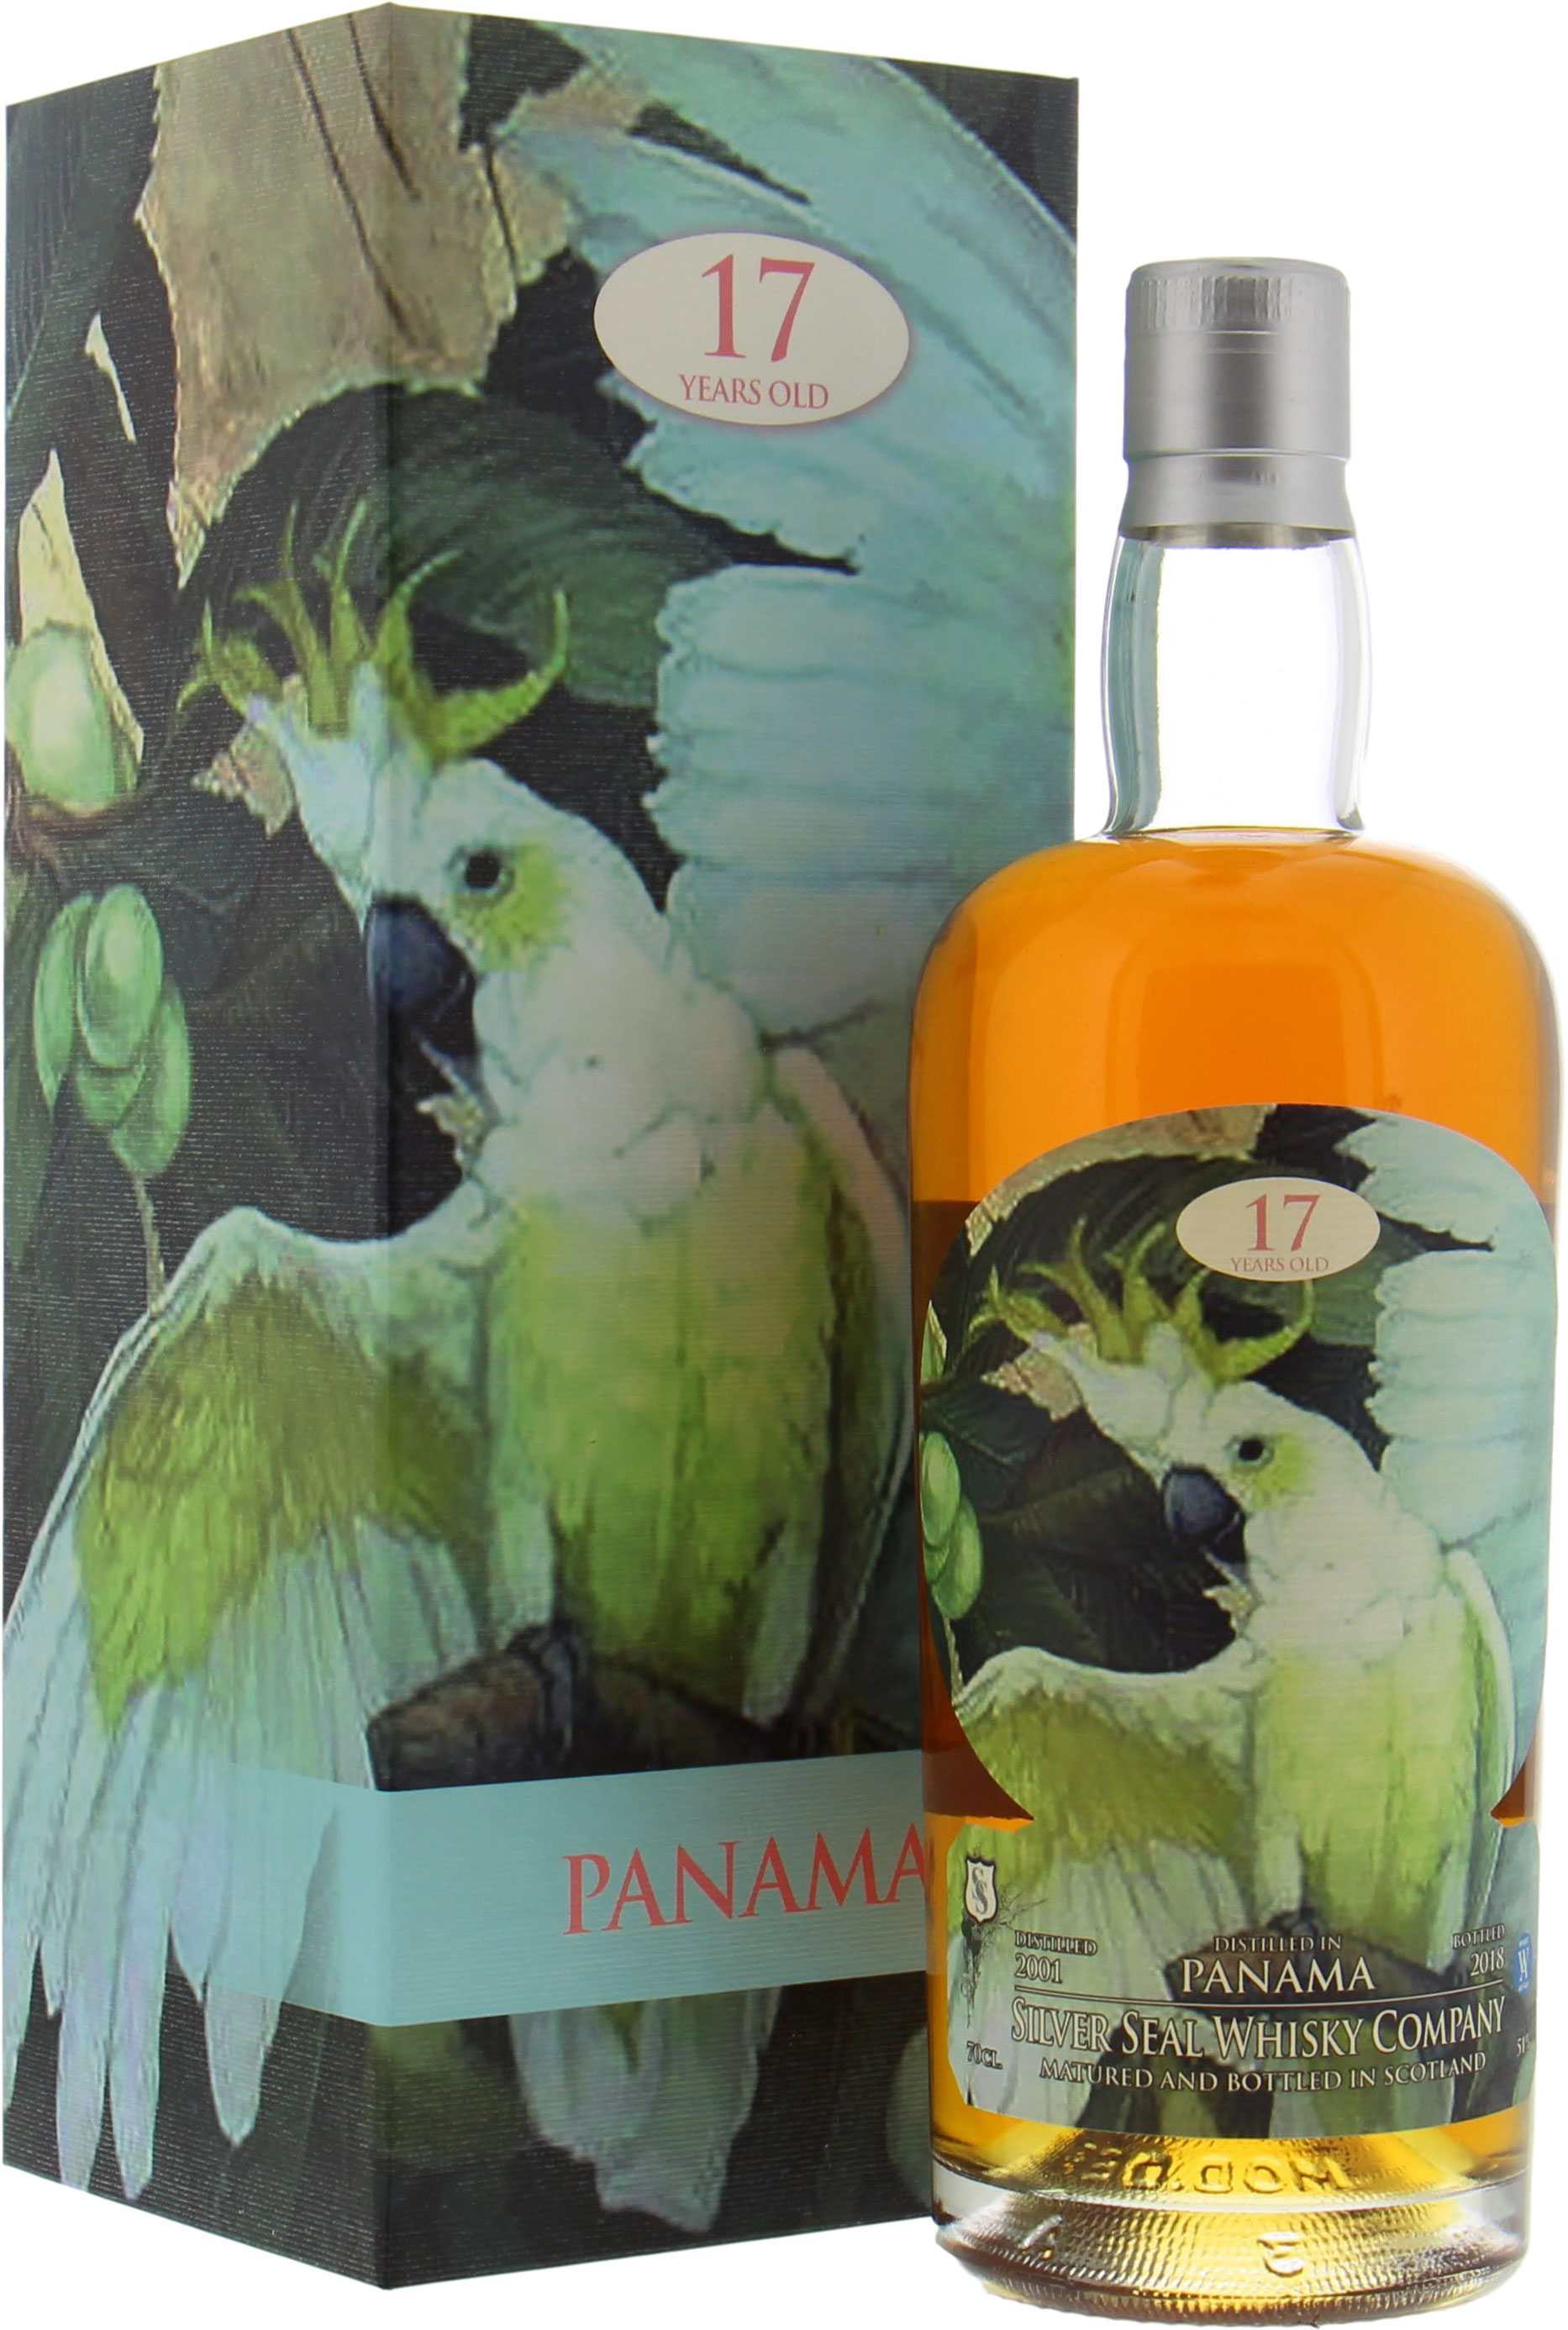 Panama - 17 Years Old Silver Seal Cask 18 51% 2000